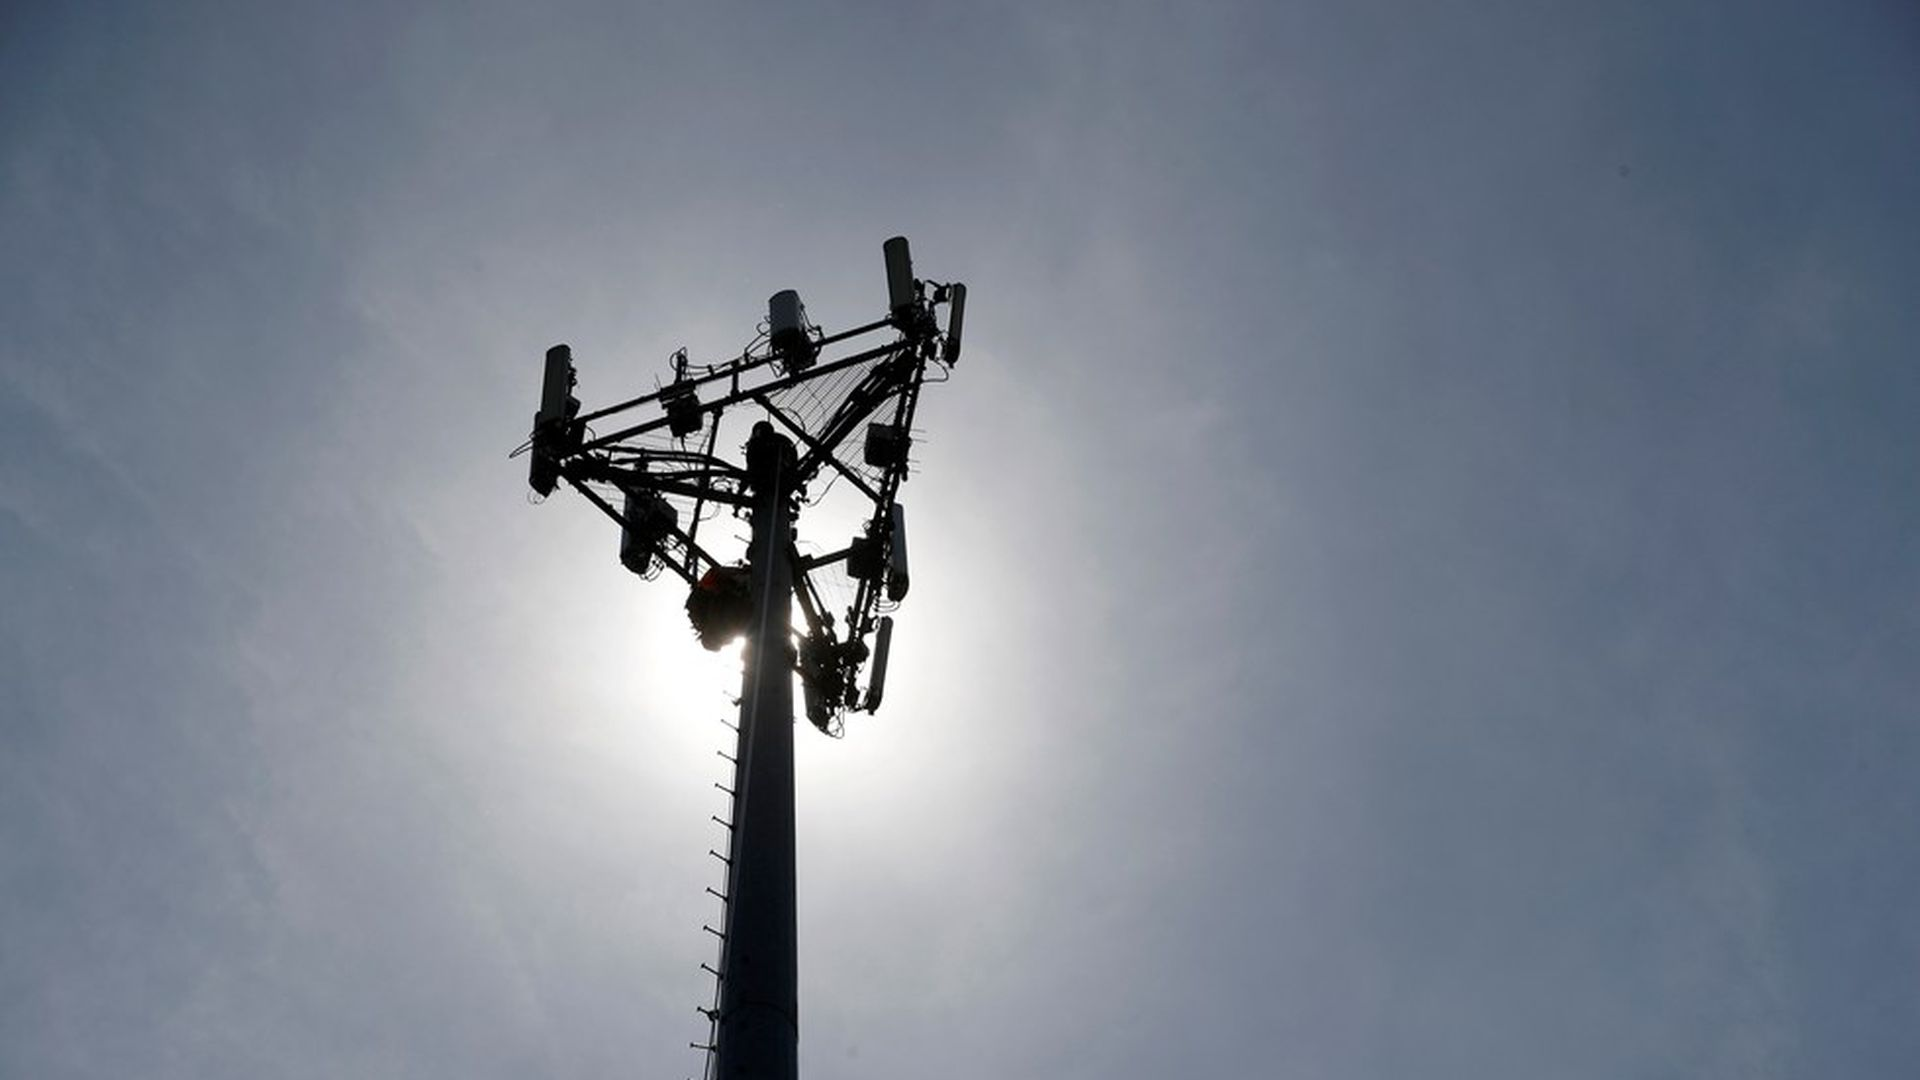 Top lawmakers push for airwaves transfer to stay on schedule